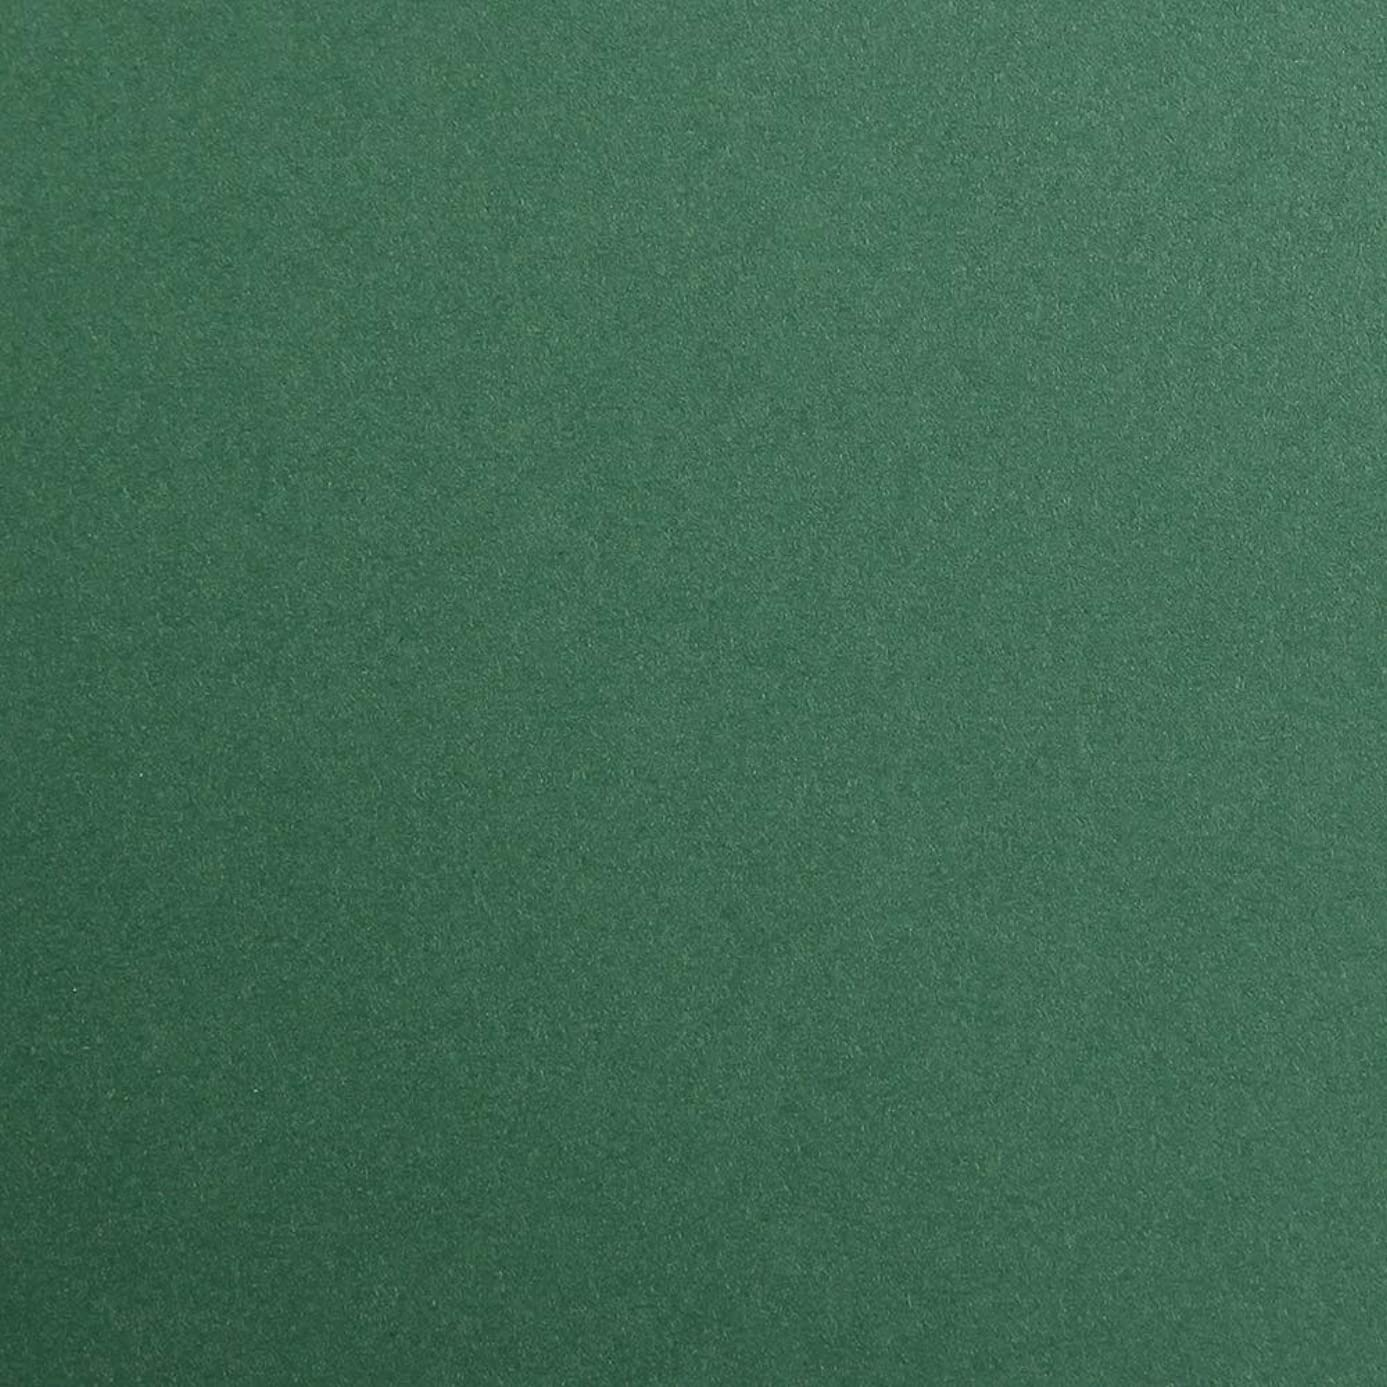 Clairefontaine Maya Coloured Smooth Drawing Paper, 270 g, 50 x 70 cm - Antique Green, Pack of 25 Sheets